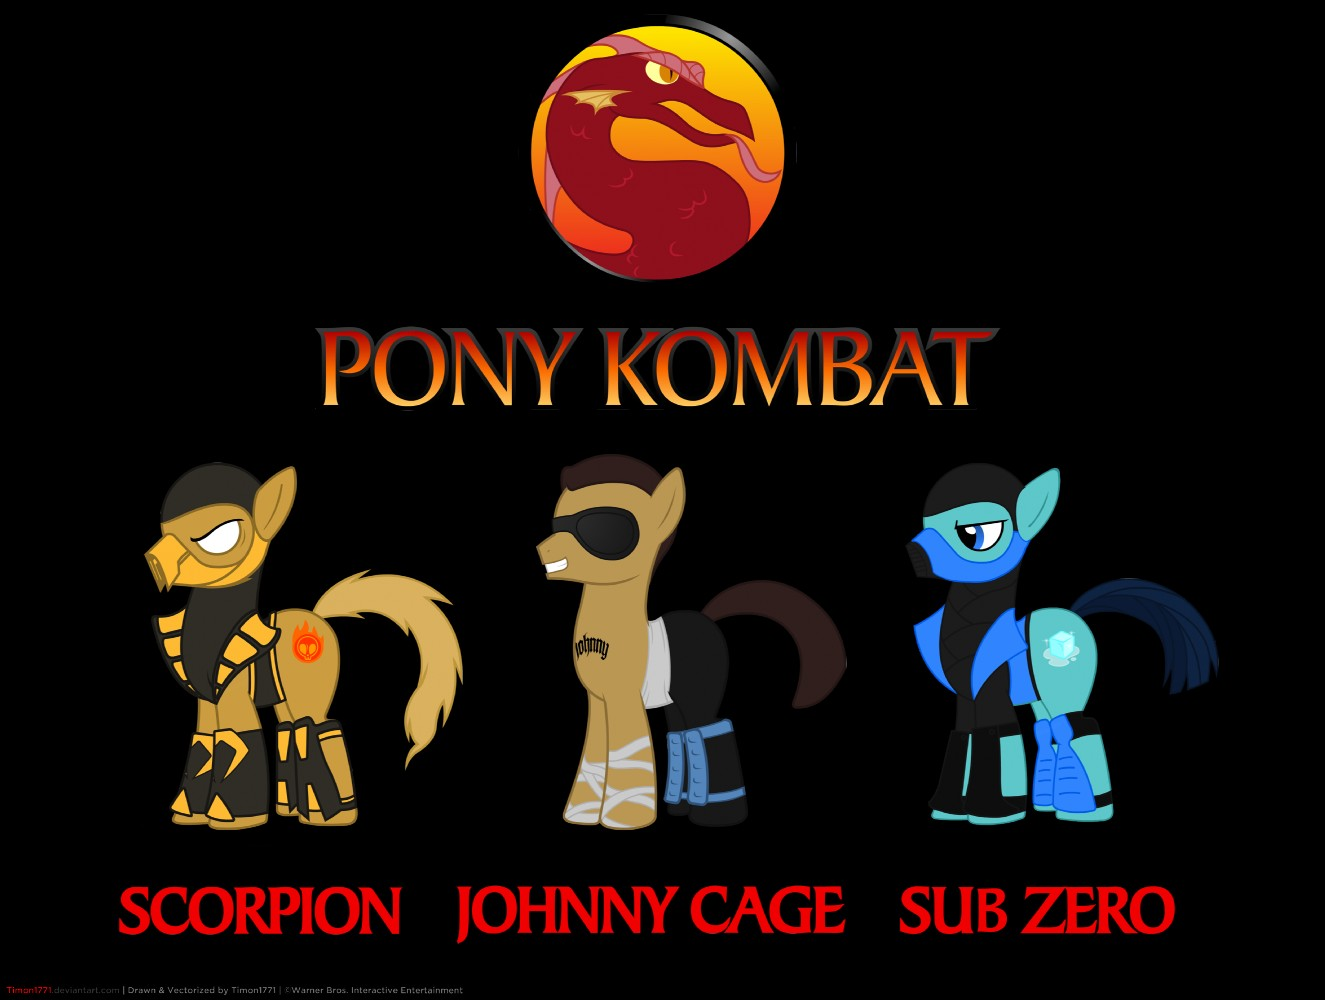 johnny cage, scorpion, and sub zero (mortal kombat) drawn ...